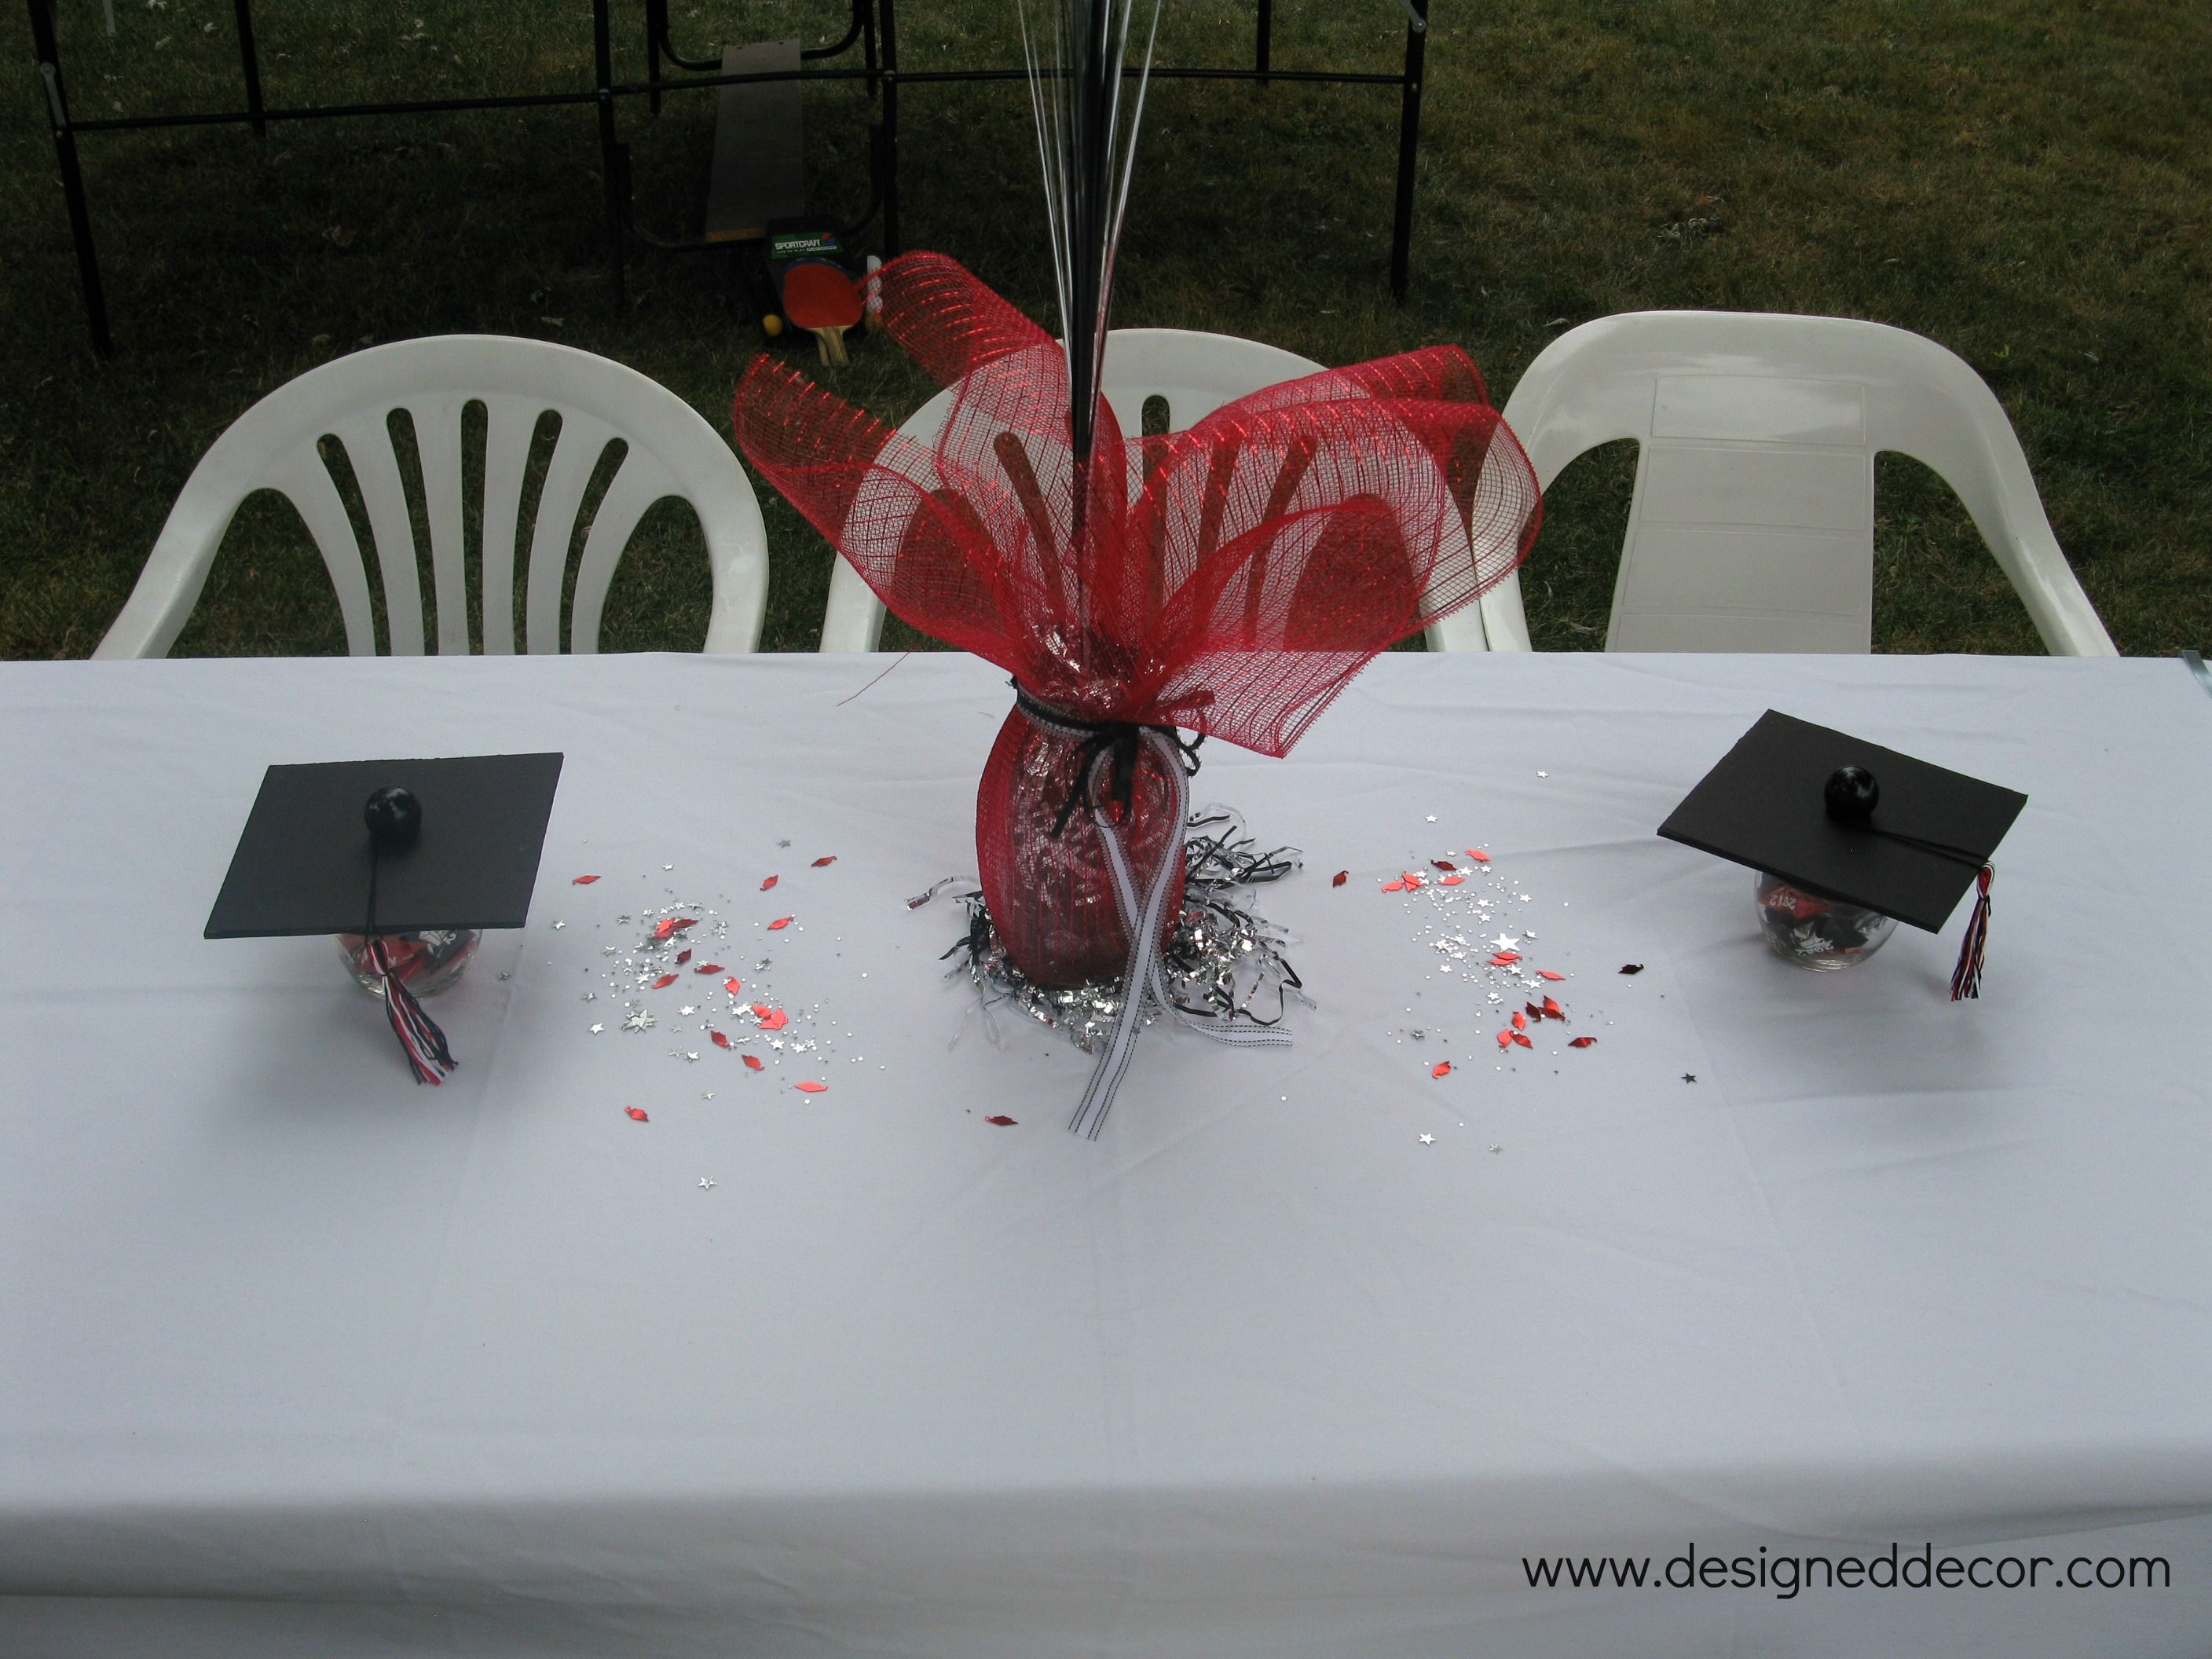 Graduation table decorations homemade - Explore Graduation Table Decorations And More